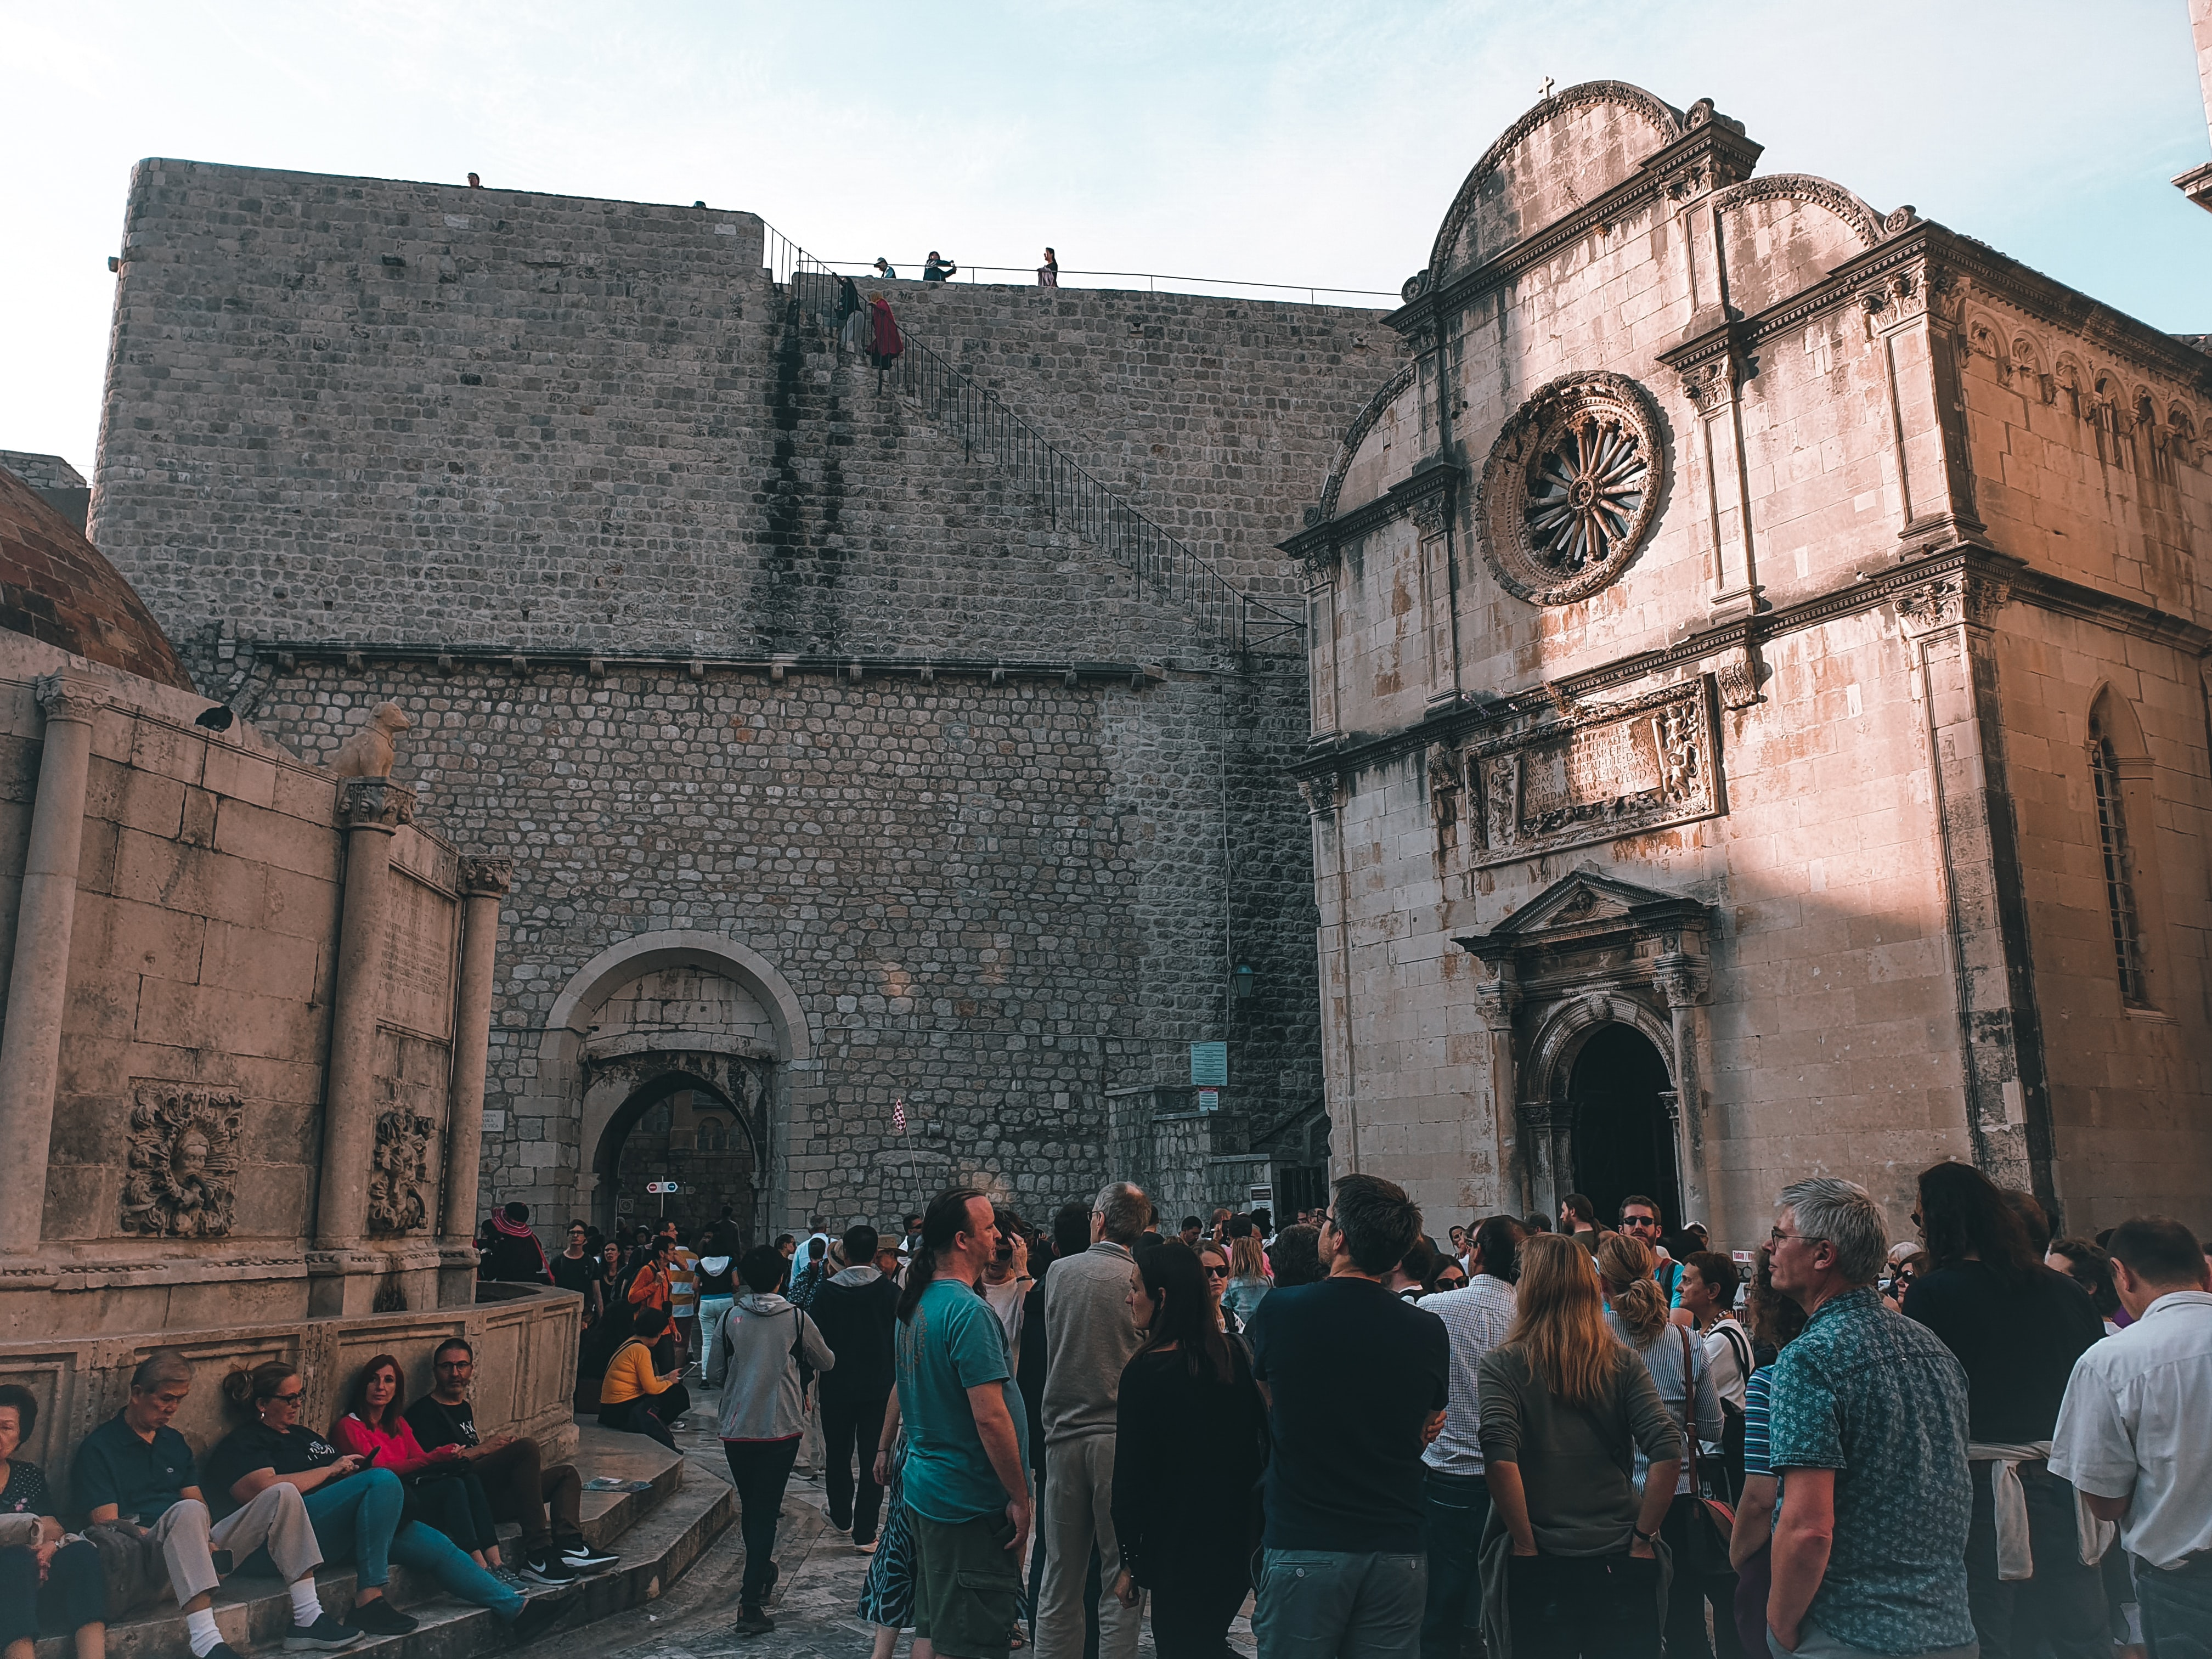 Feast of St. Blaise in Dubrovnik